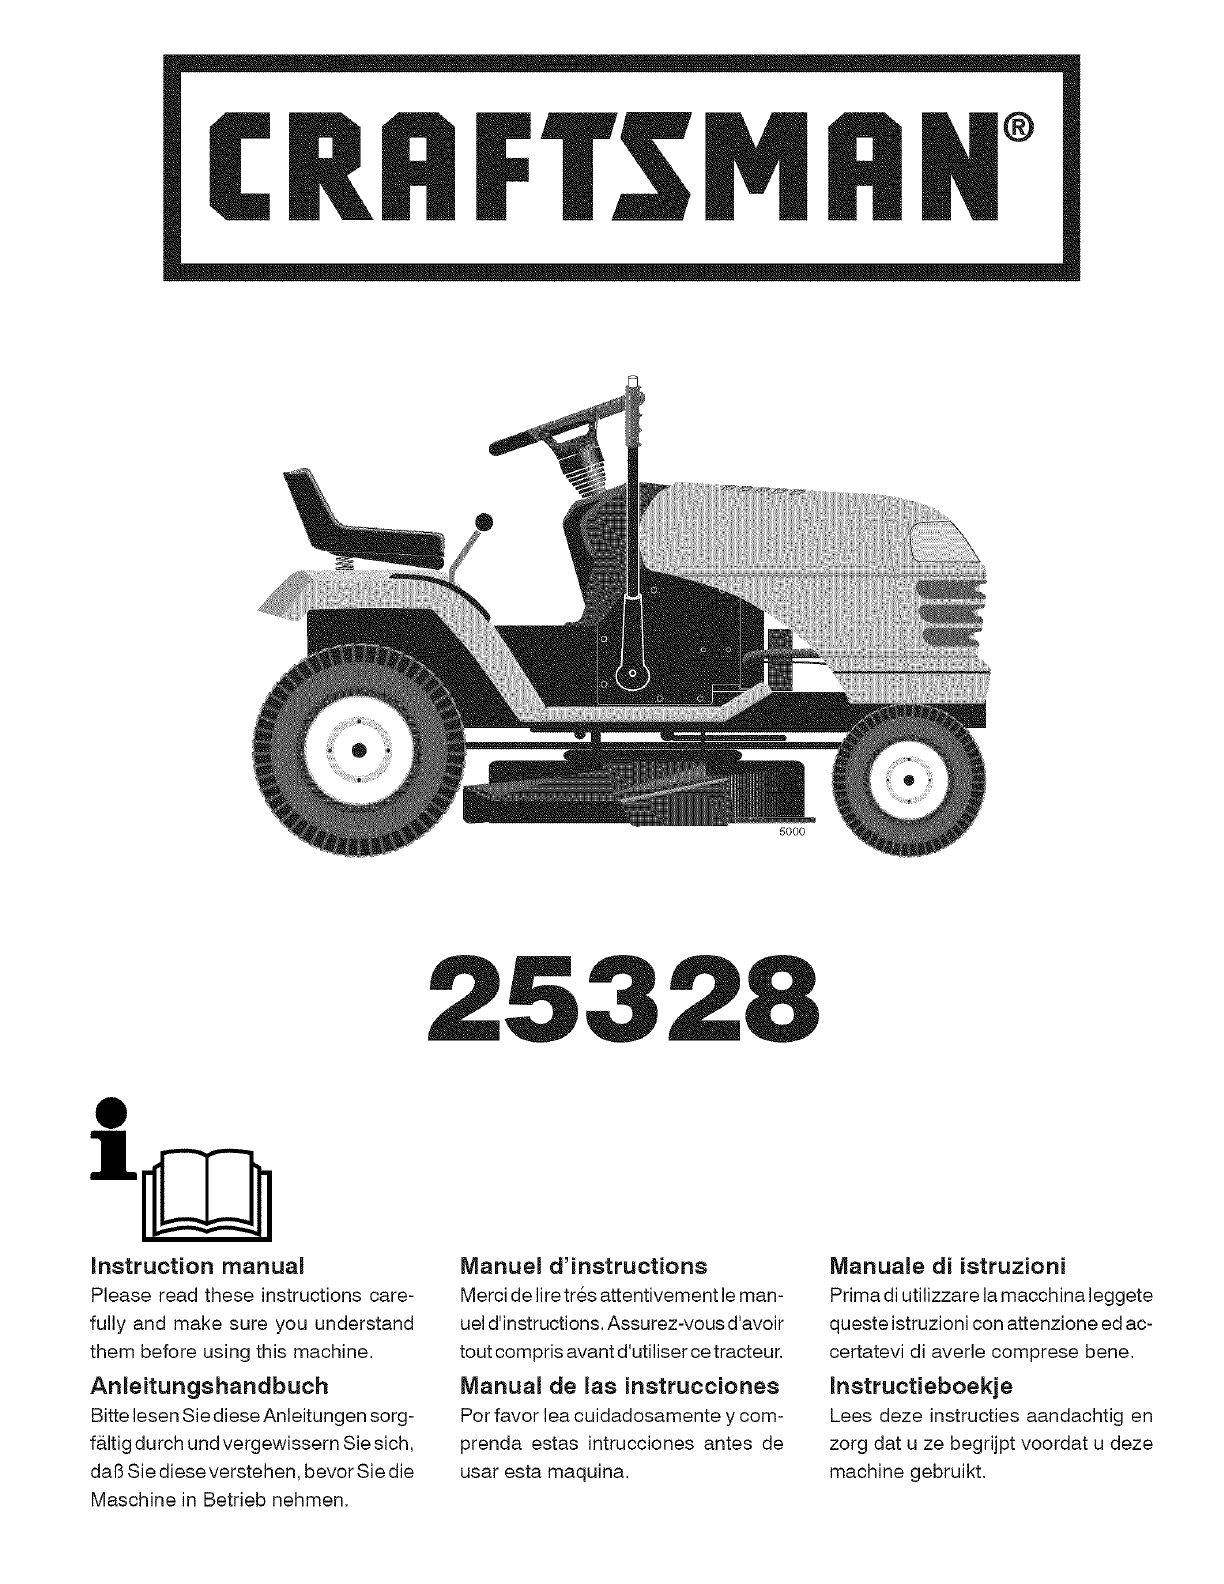 Il Tappeto Volante Wiki Craftsman 917253280 User Manual Tractor Manuals And Guides L0803683